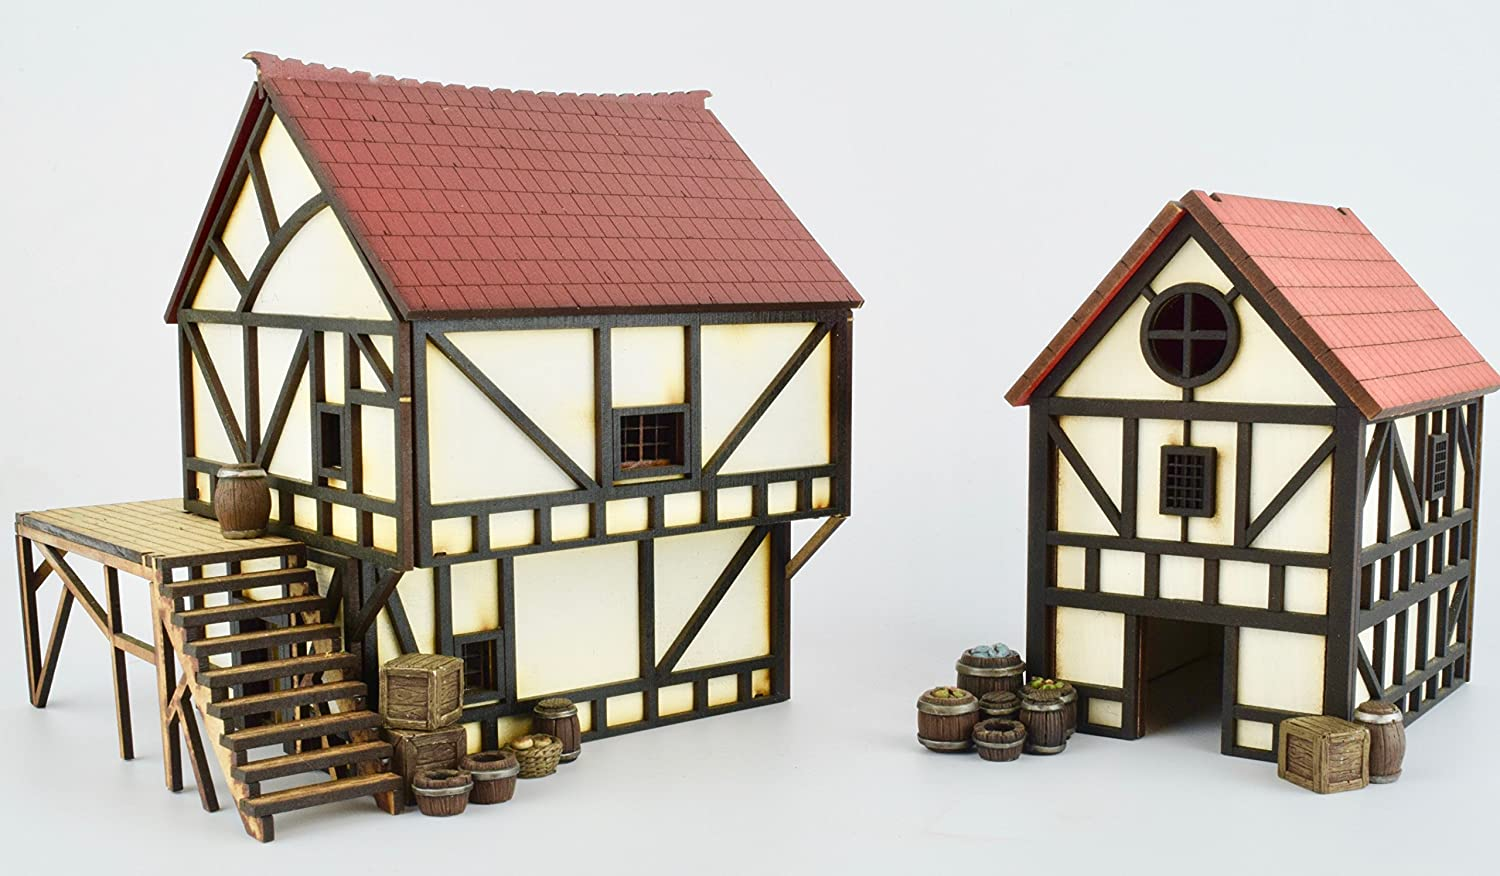 WWG Medieval Cottage and Townhouse Set with Resin Accessories – 28mm Heroic Fantasy Wargaming Terrain Warhammer Age of Sigmar Confrontation